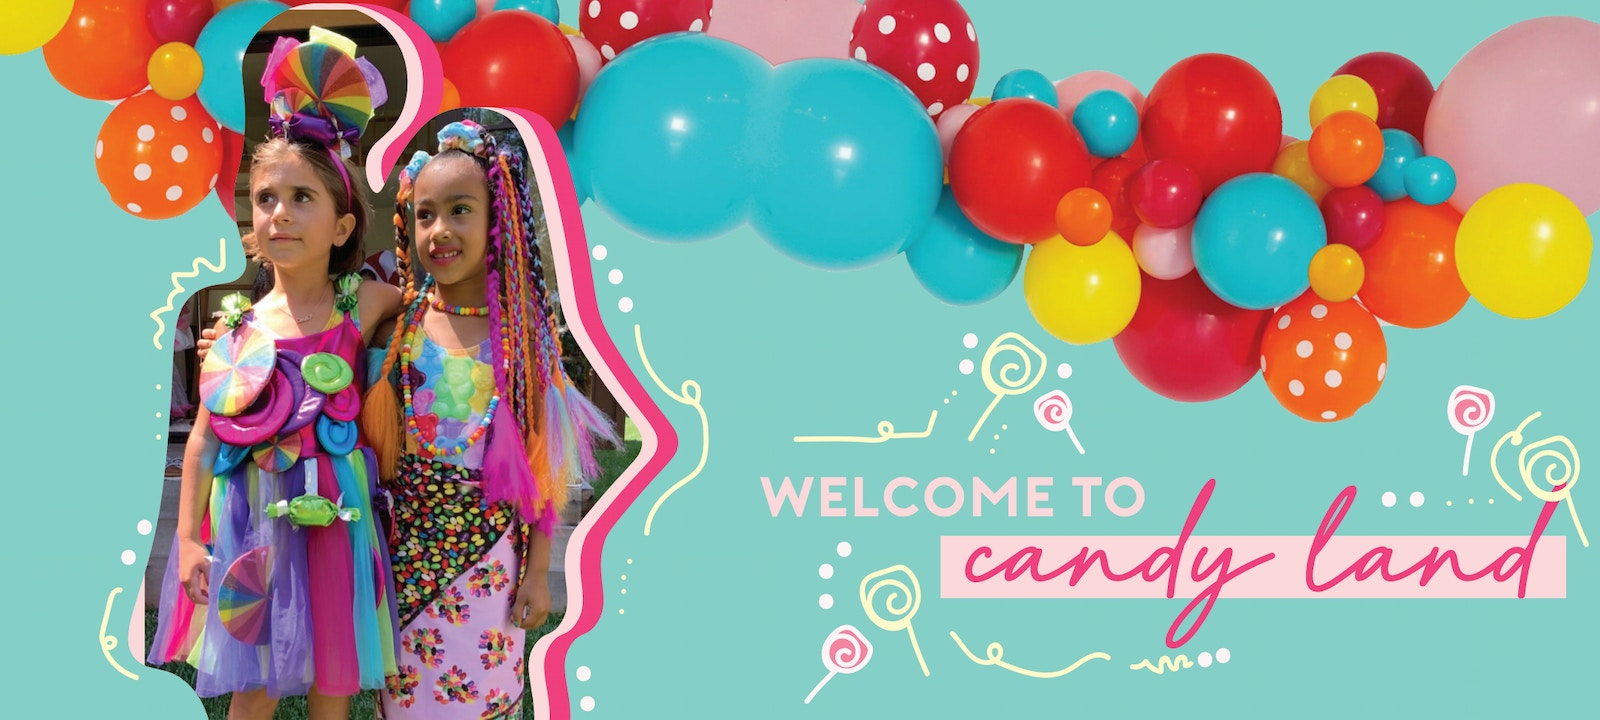 RECREATE THE KARDASHIANS' CANDYLAND PARTY